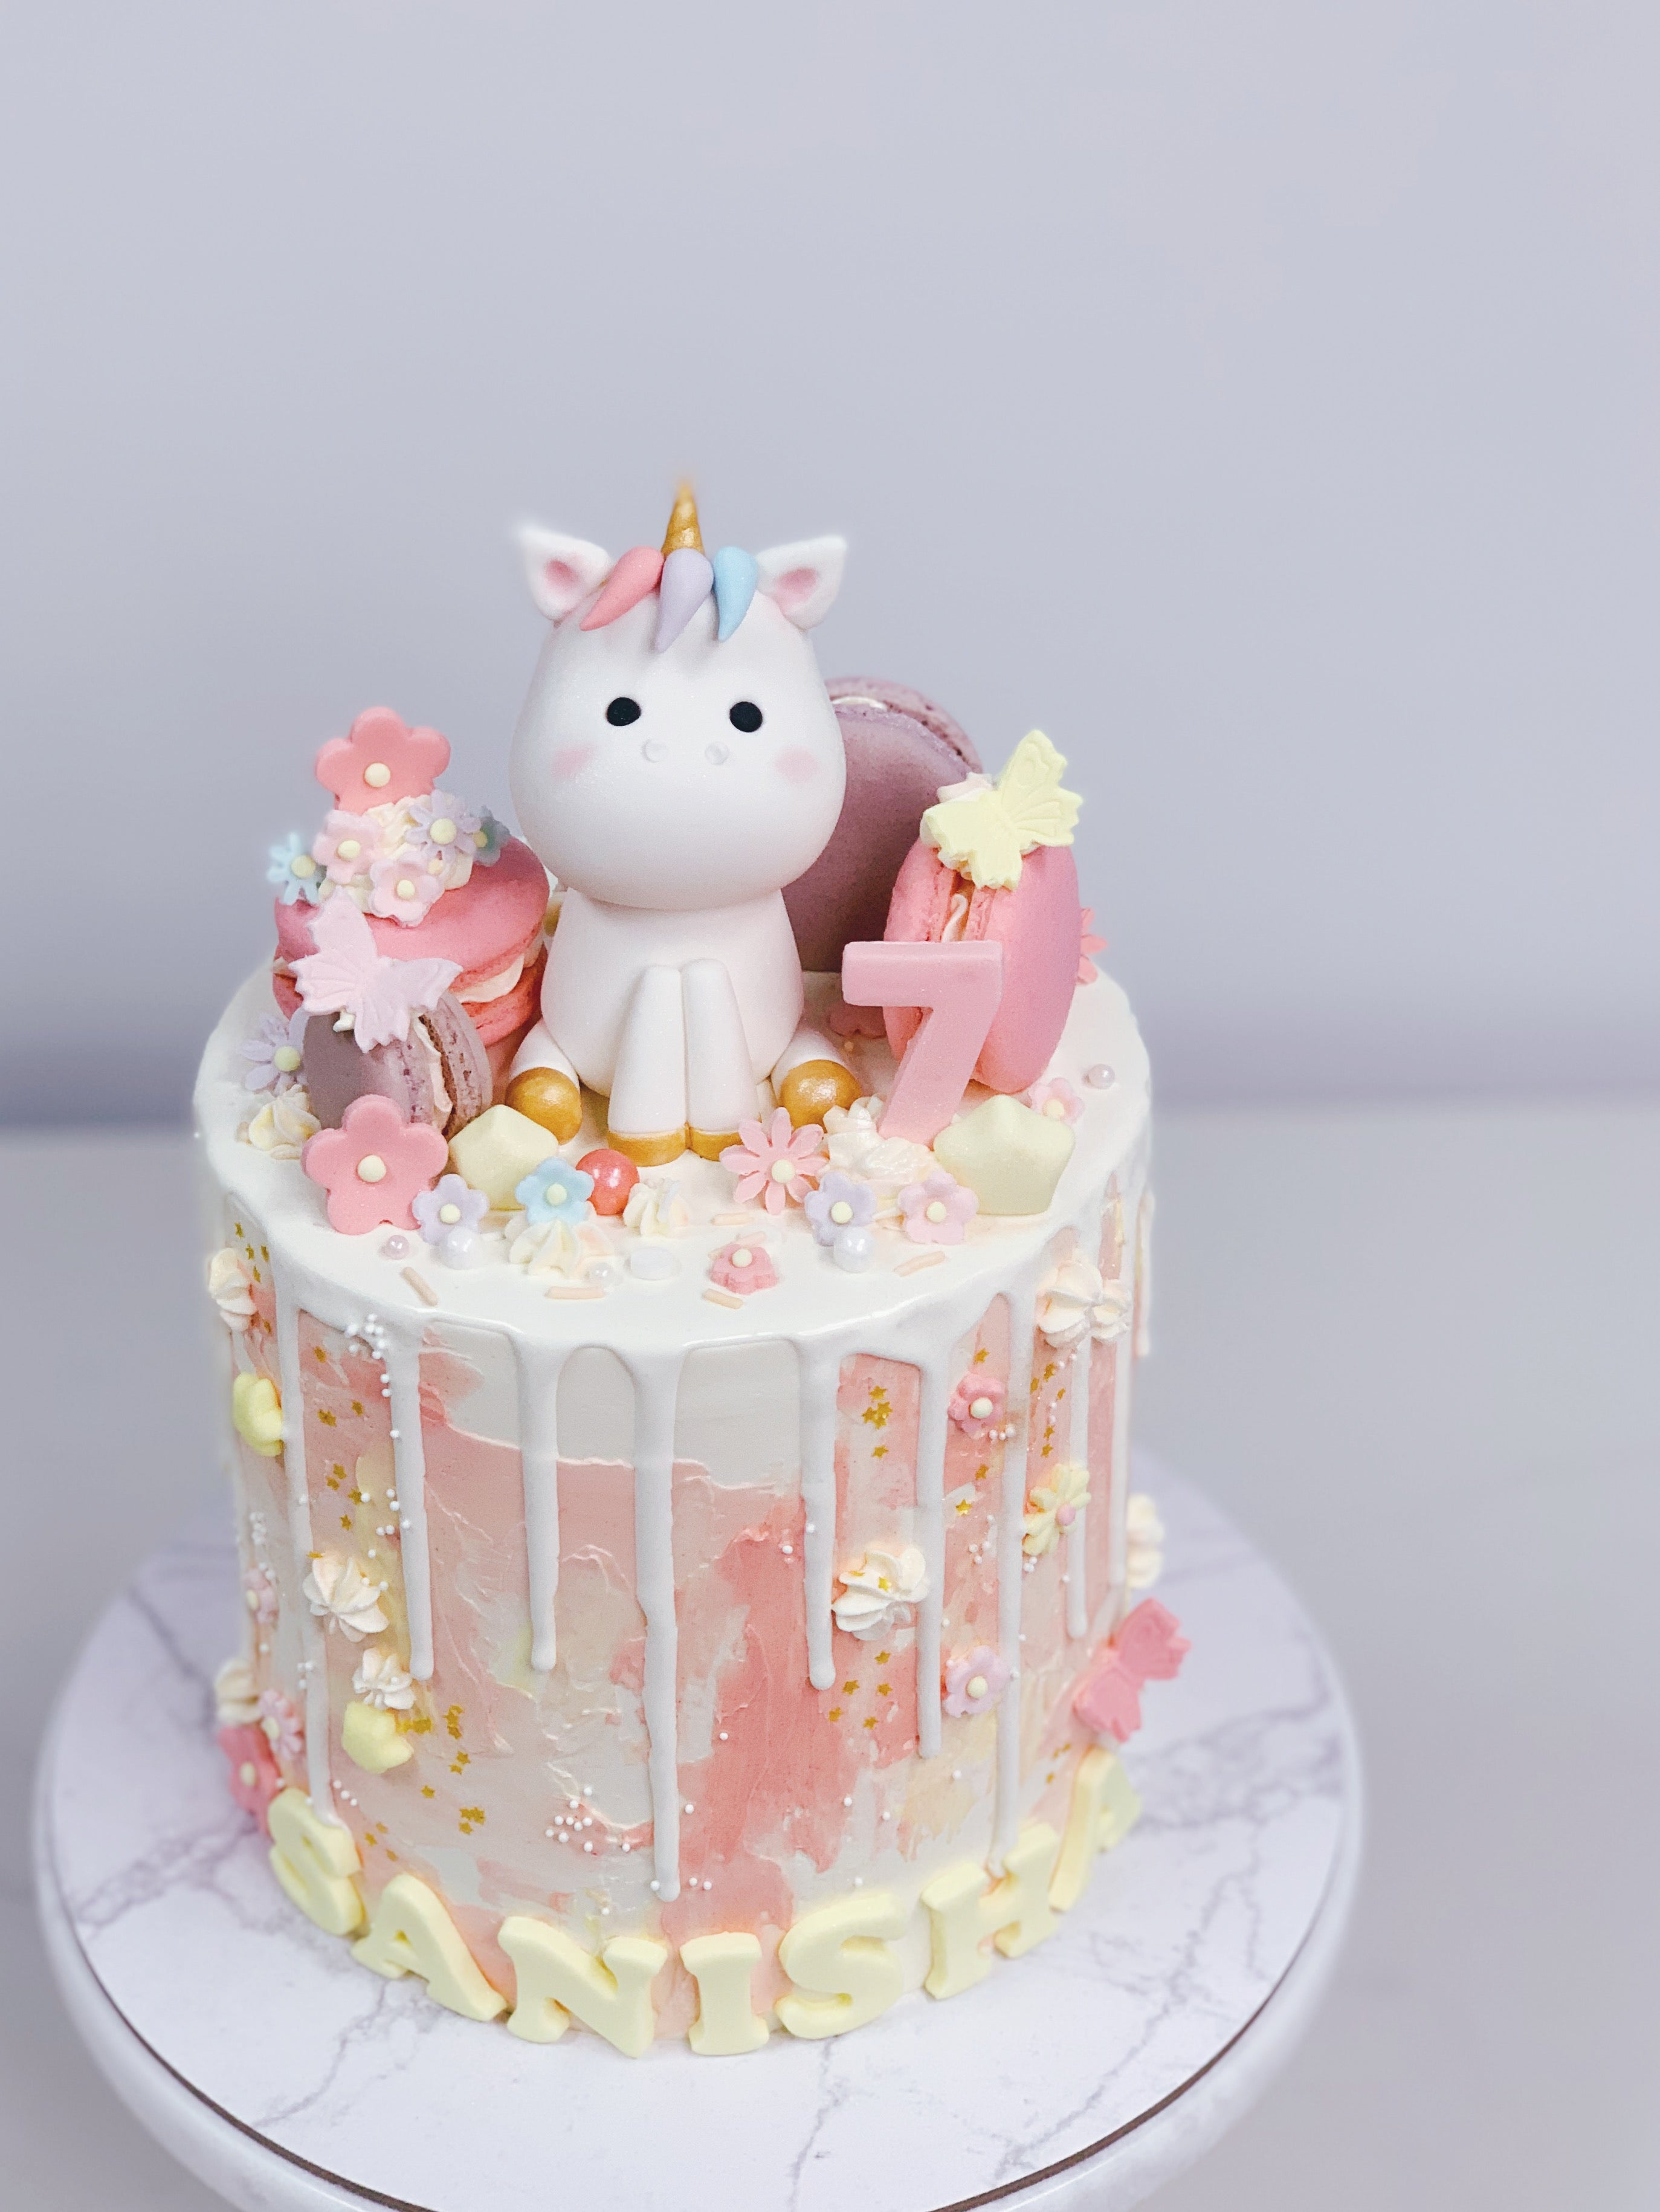 Pink Texture Chocolate Drip Cake with Unicorn and Macarons